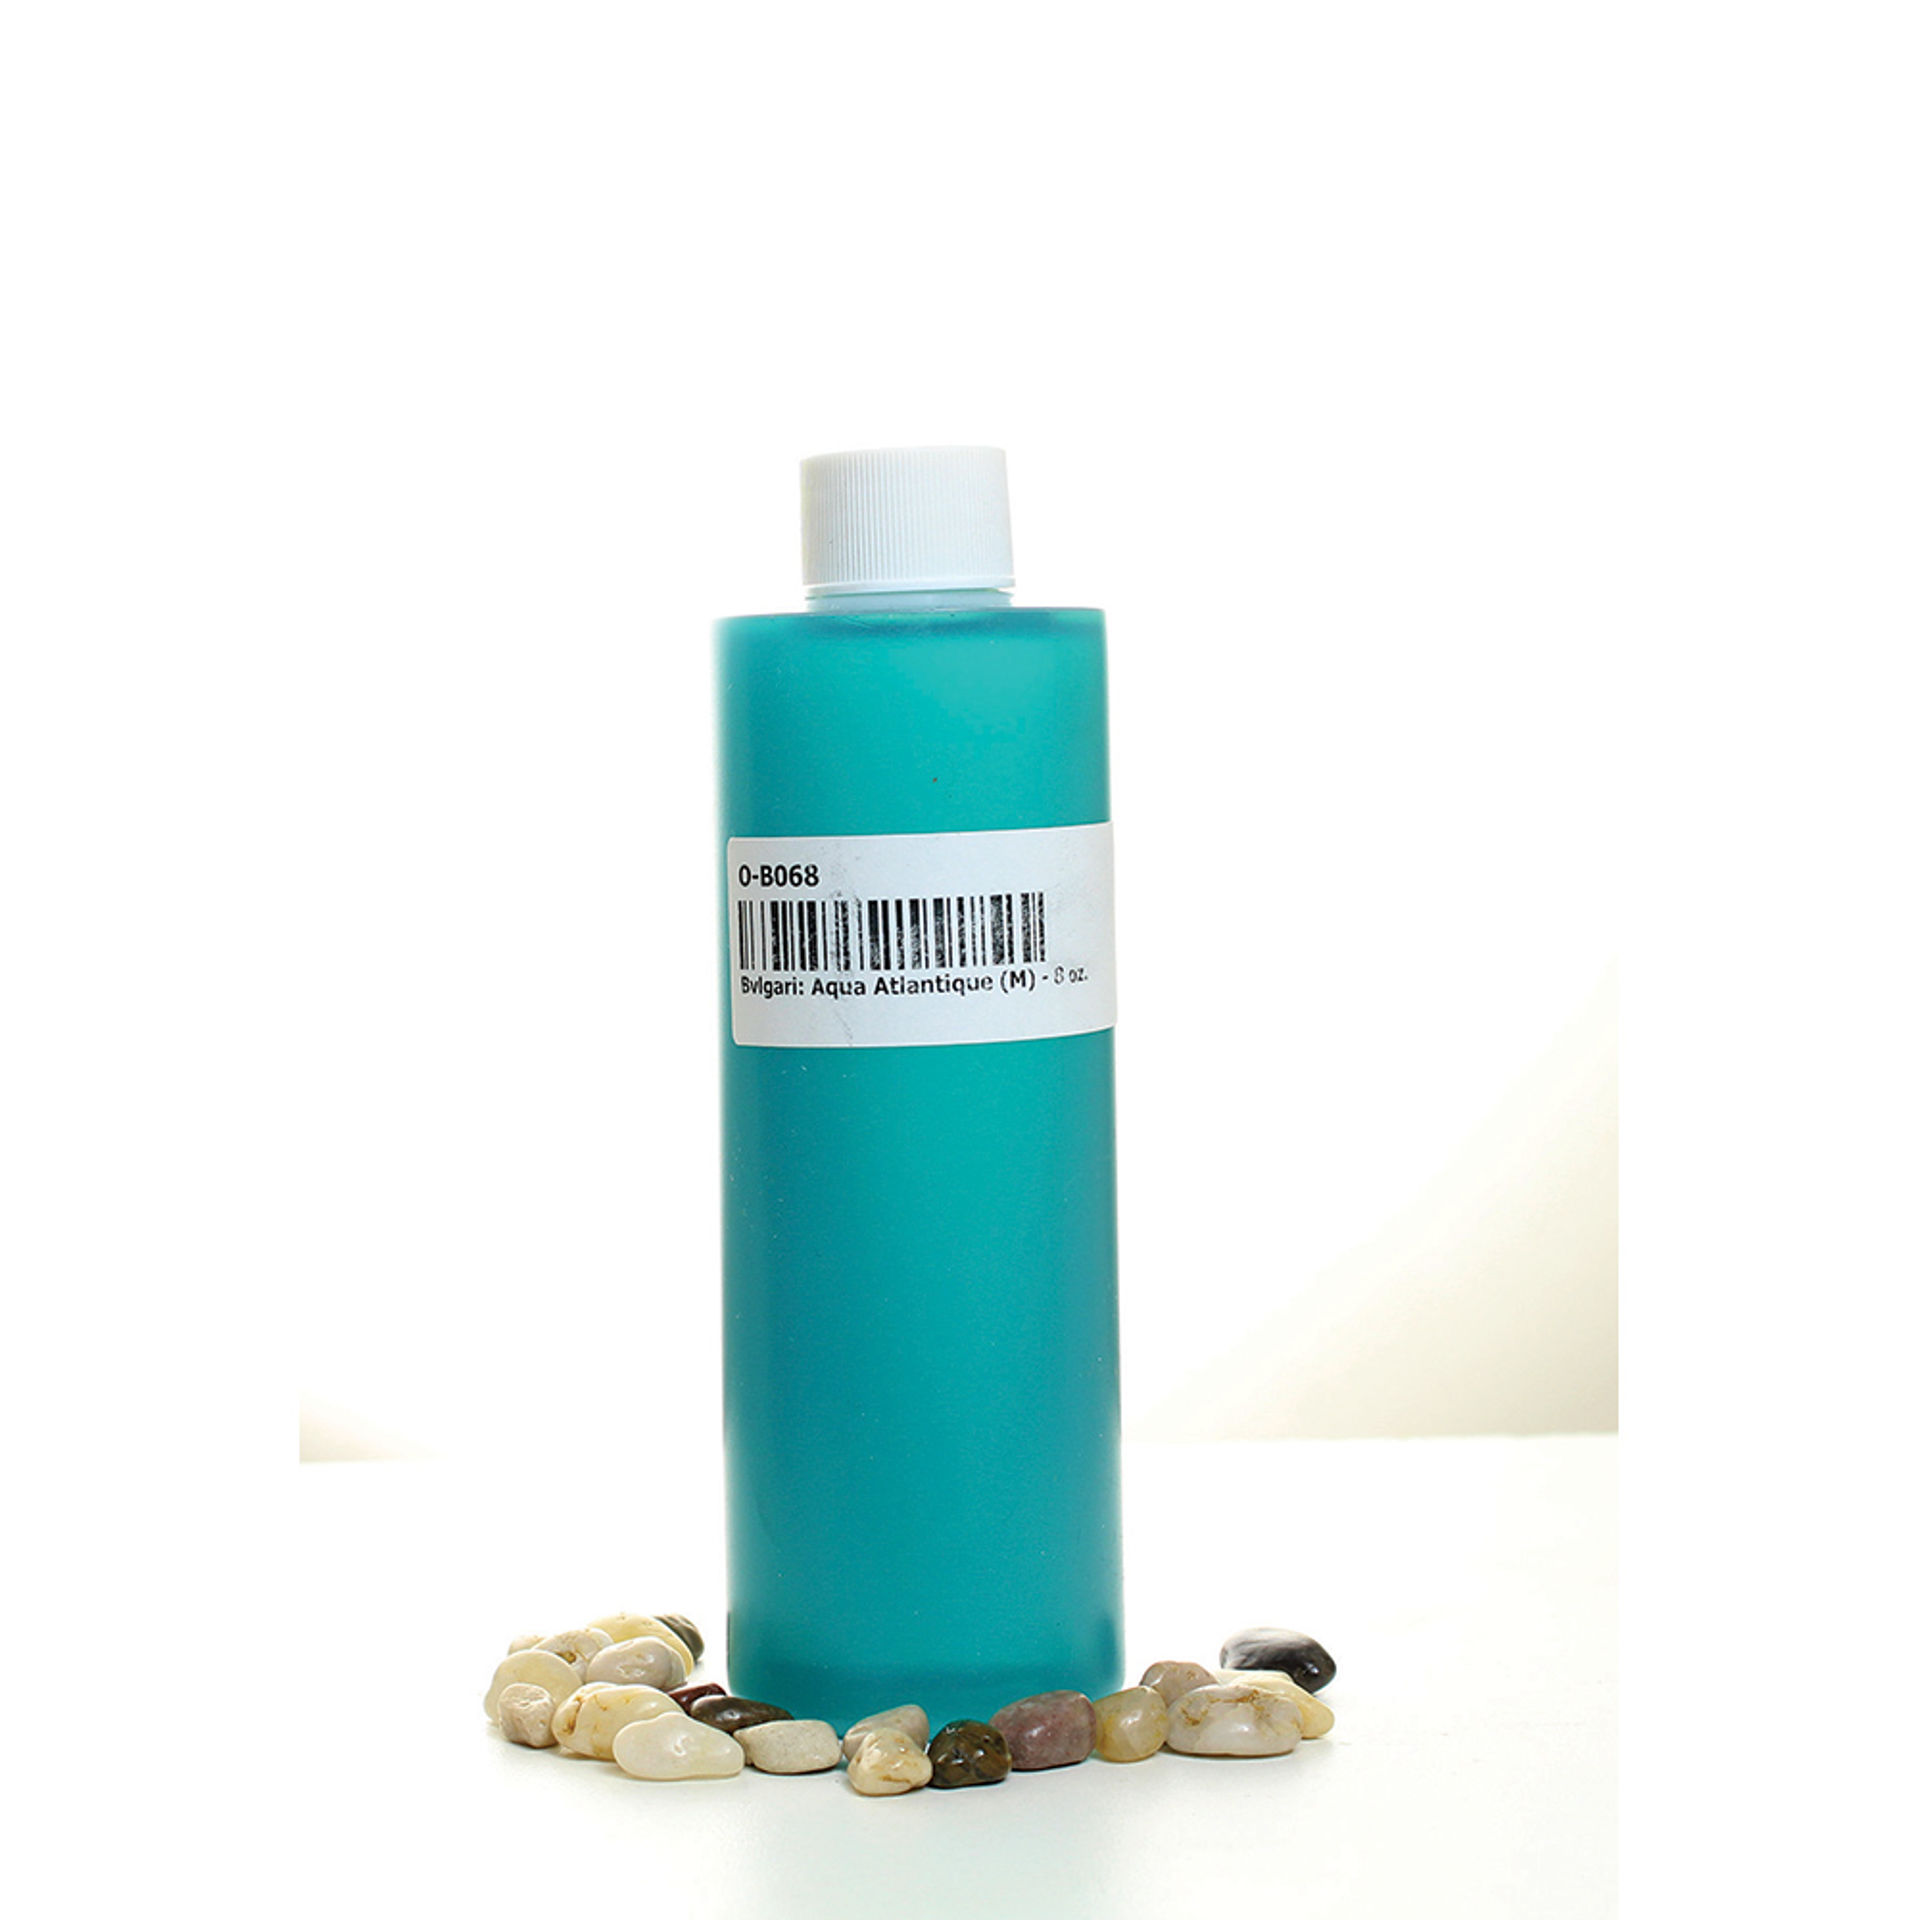 Picture of Bvlgari: Aqua Atlantique (M) - 8 oz.